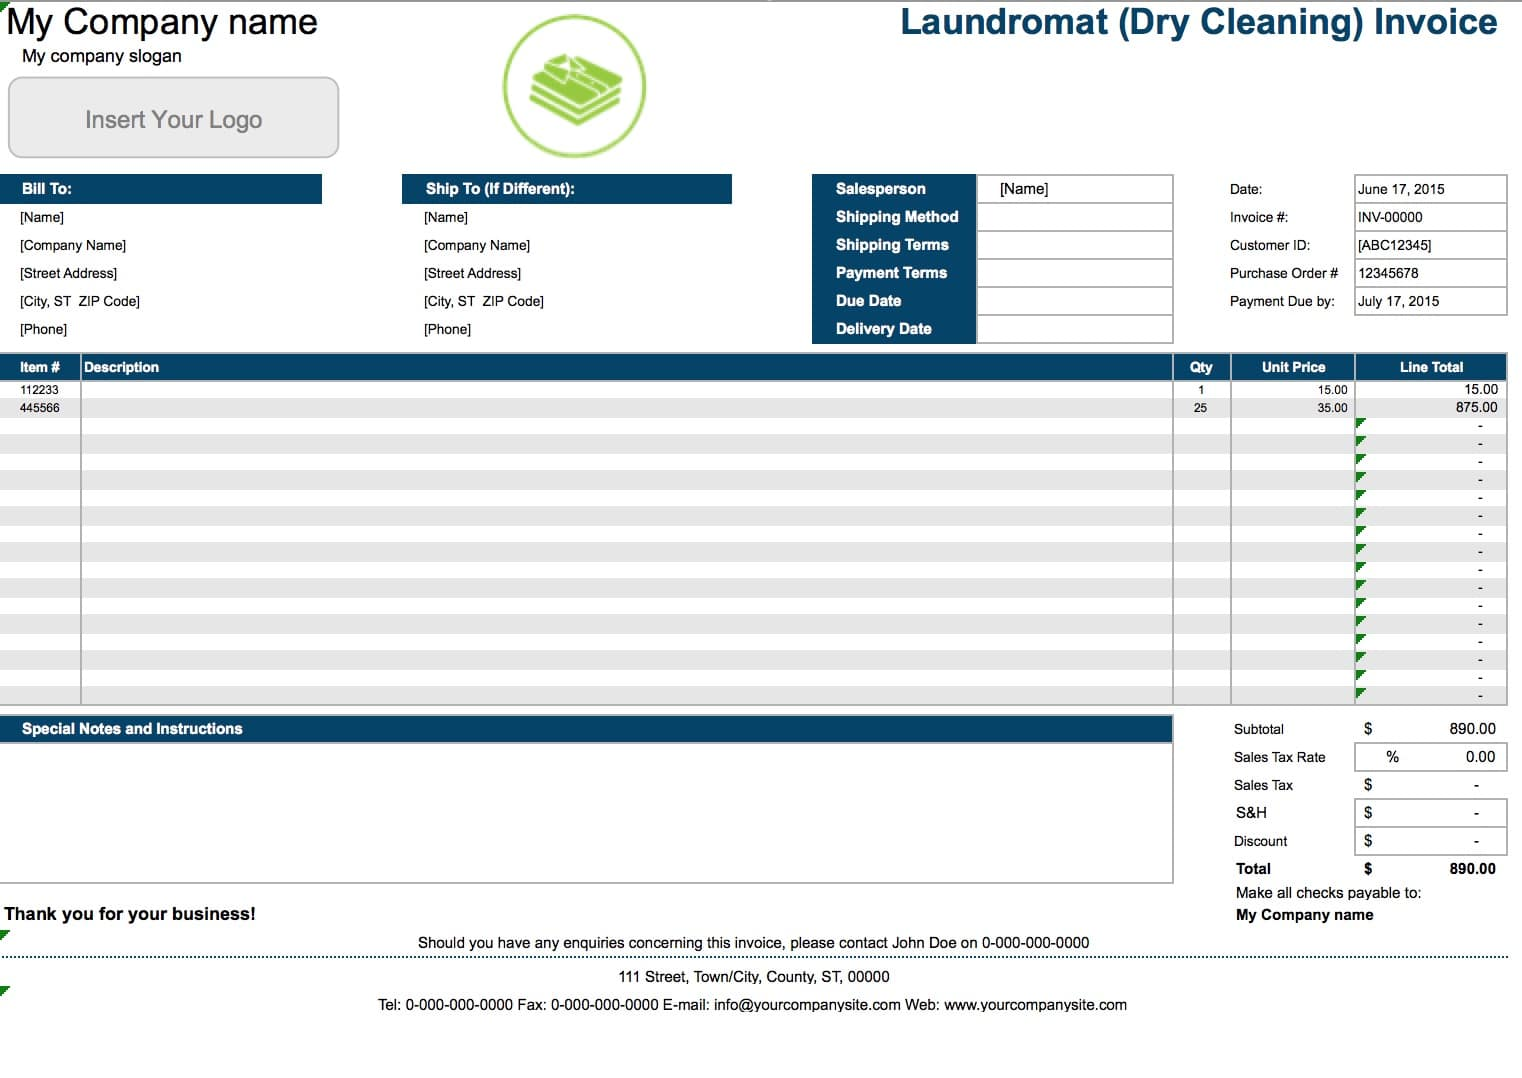 free laundromat dry cleaning invoice template excel